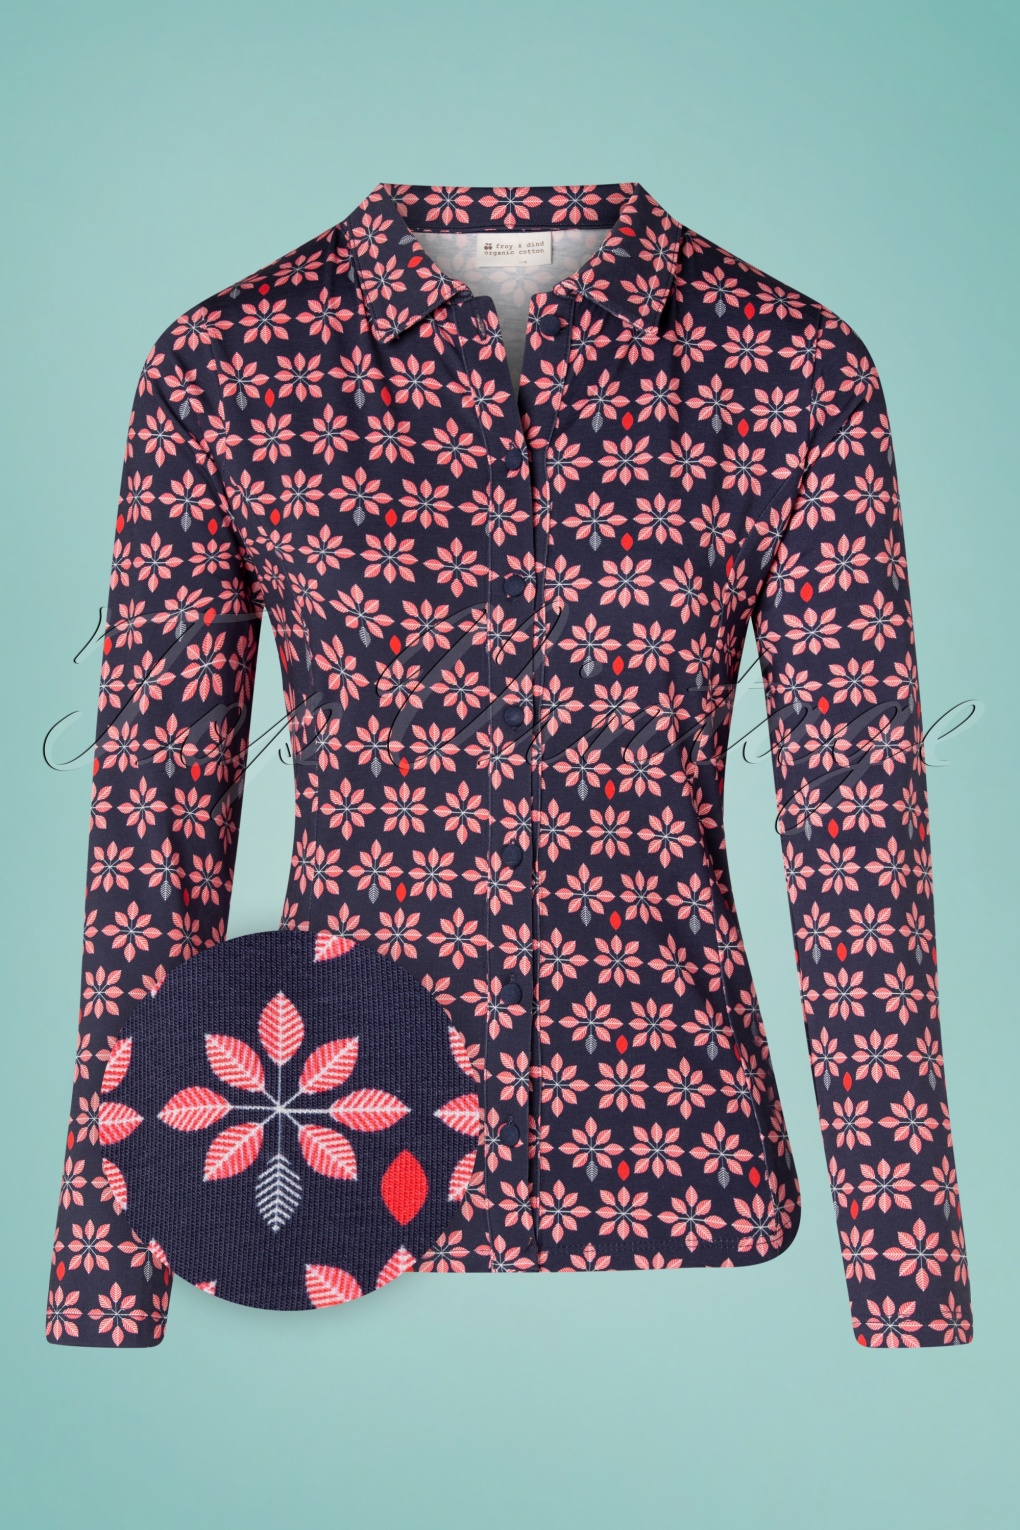 1960s Style Clothing & 60s Fashion 60s Esmee Flower Shirt Blouse in Navy £63.98 AT vintagedancer.com